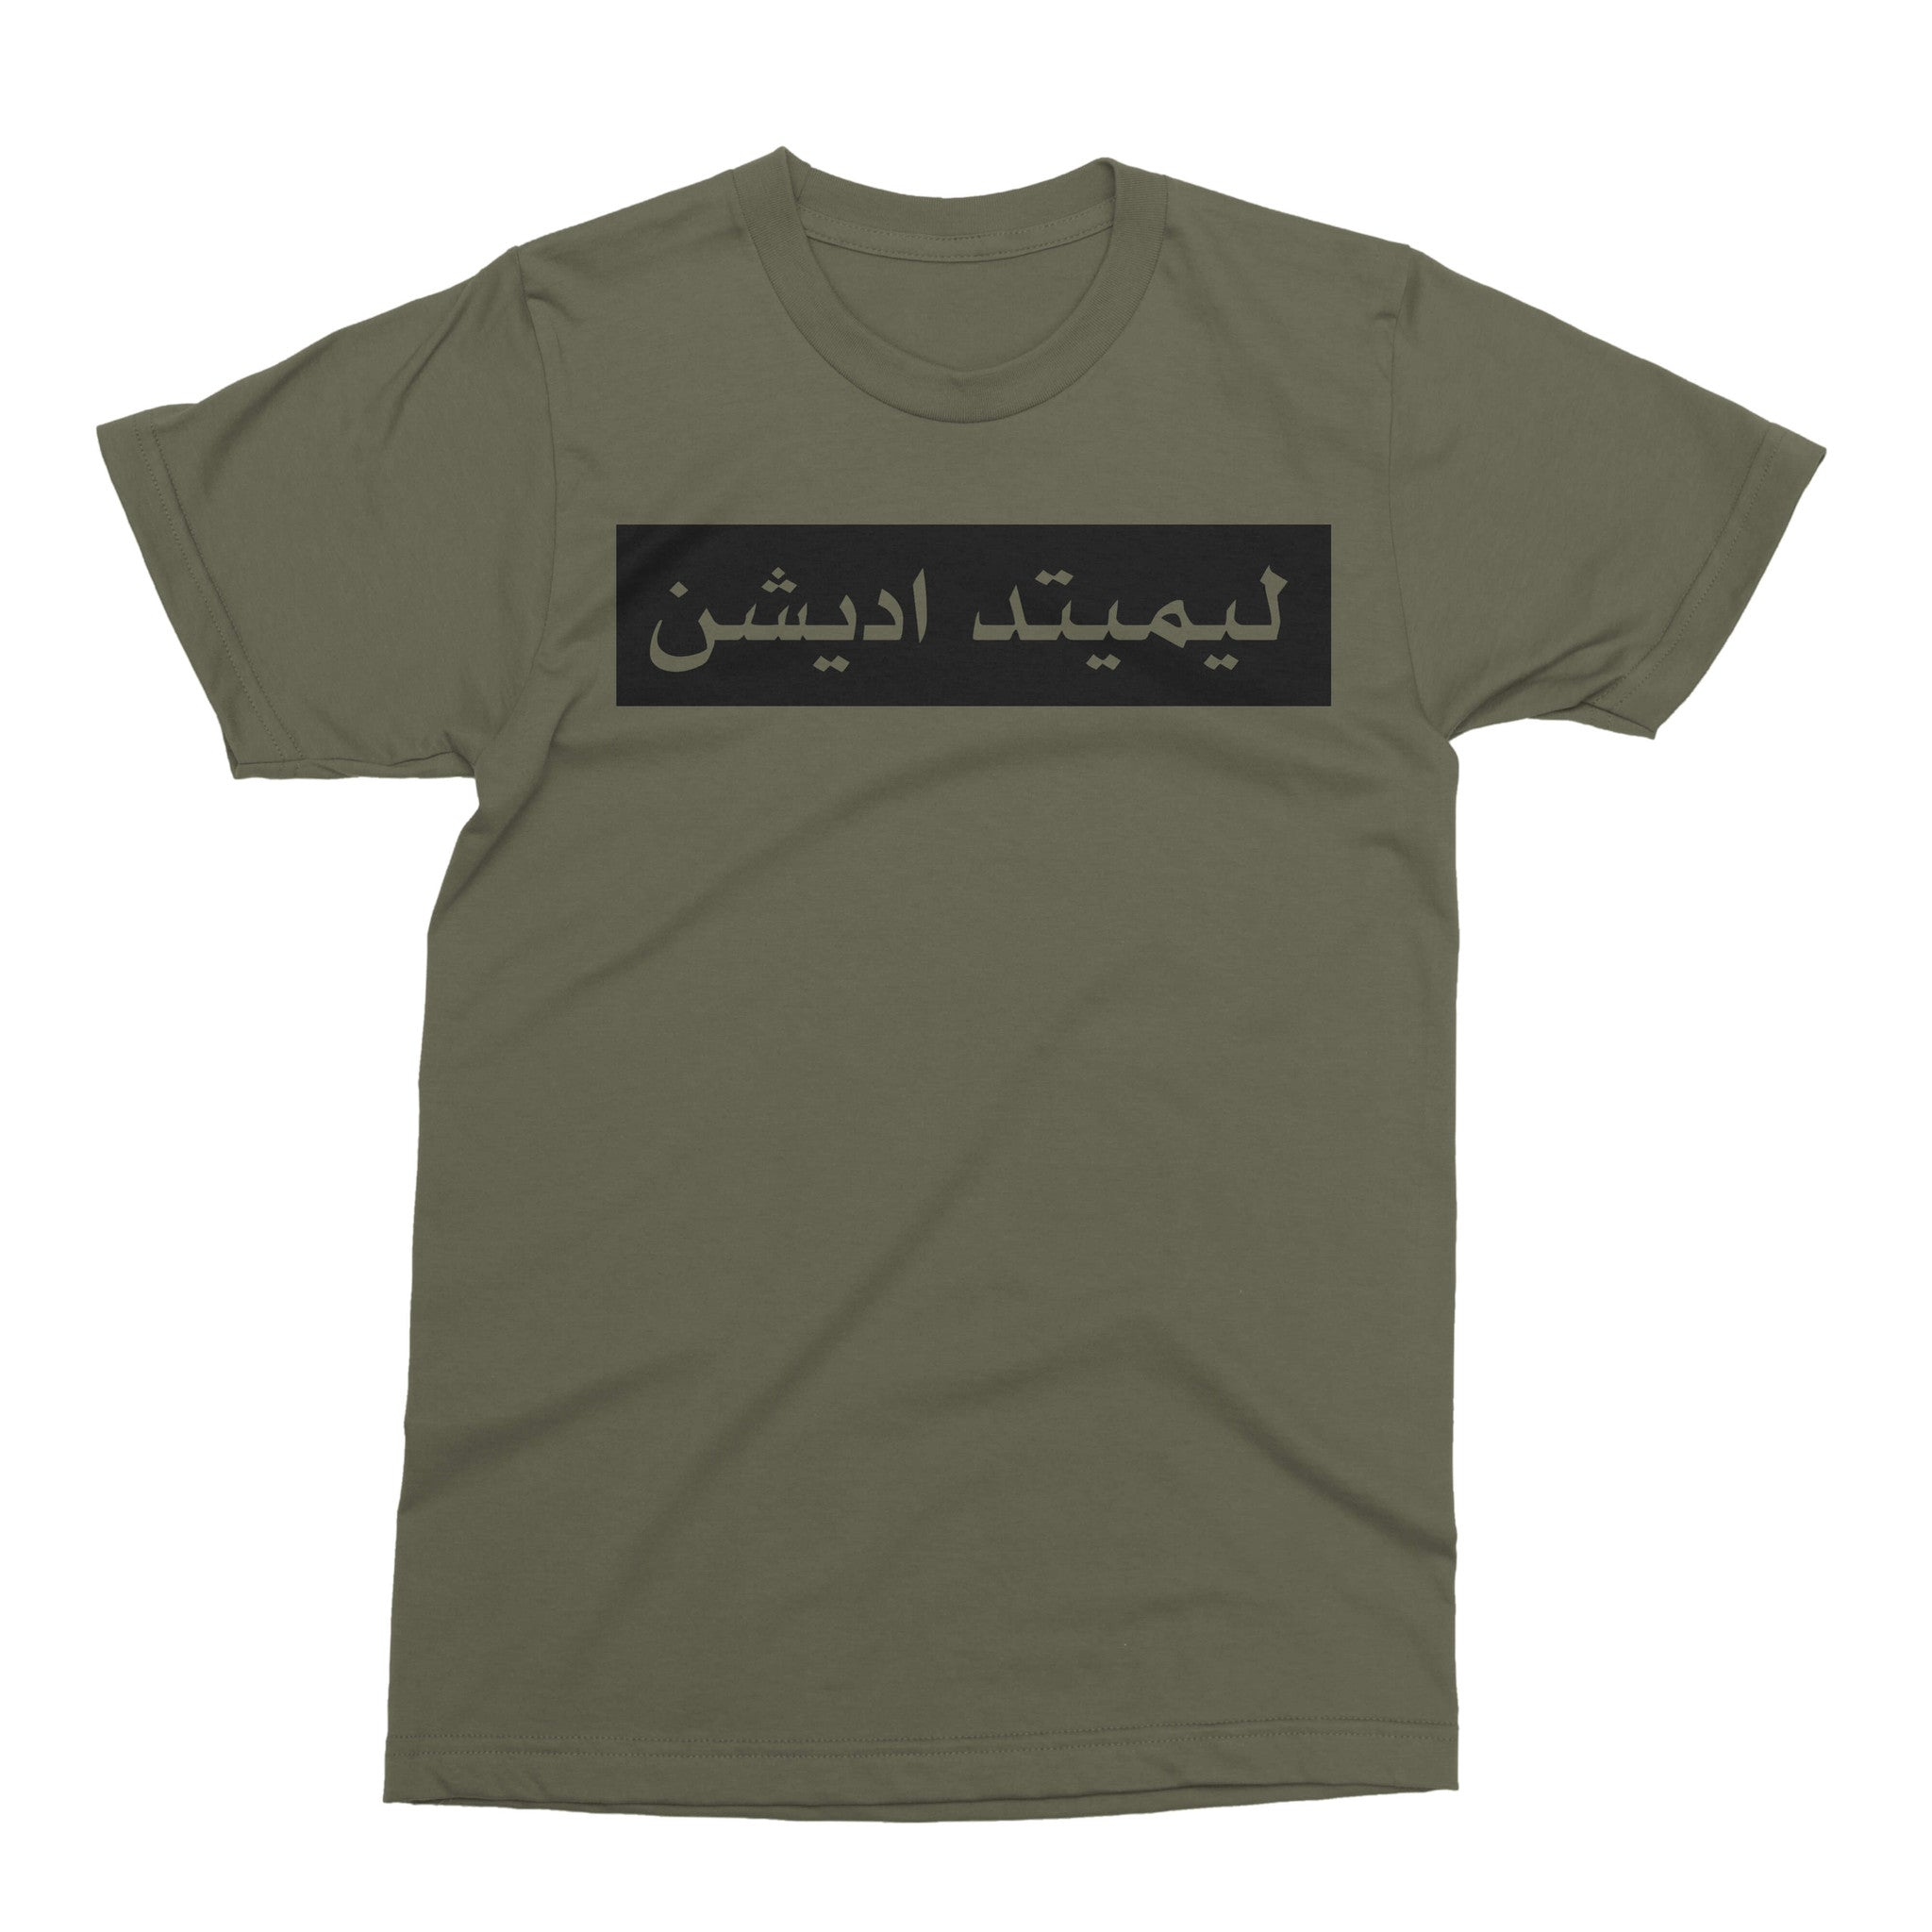 Limited Edition T-Shirt - Green